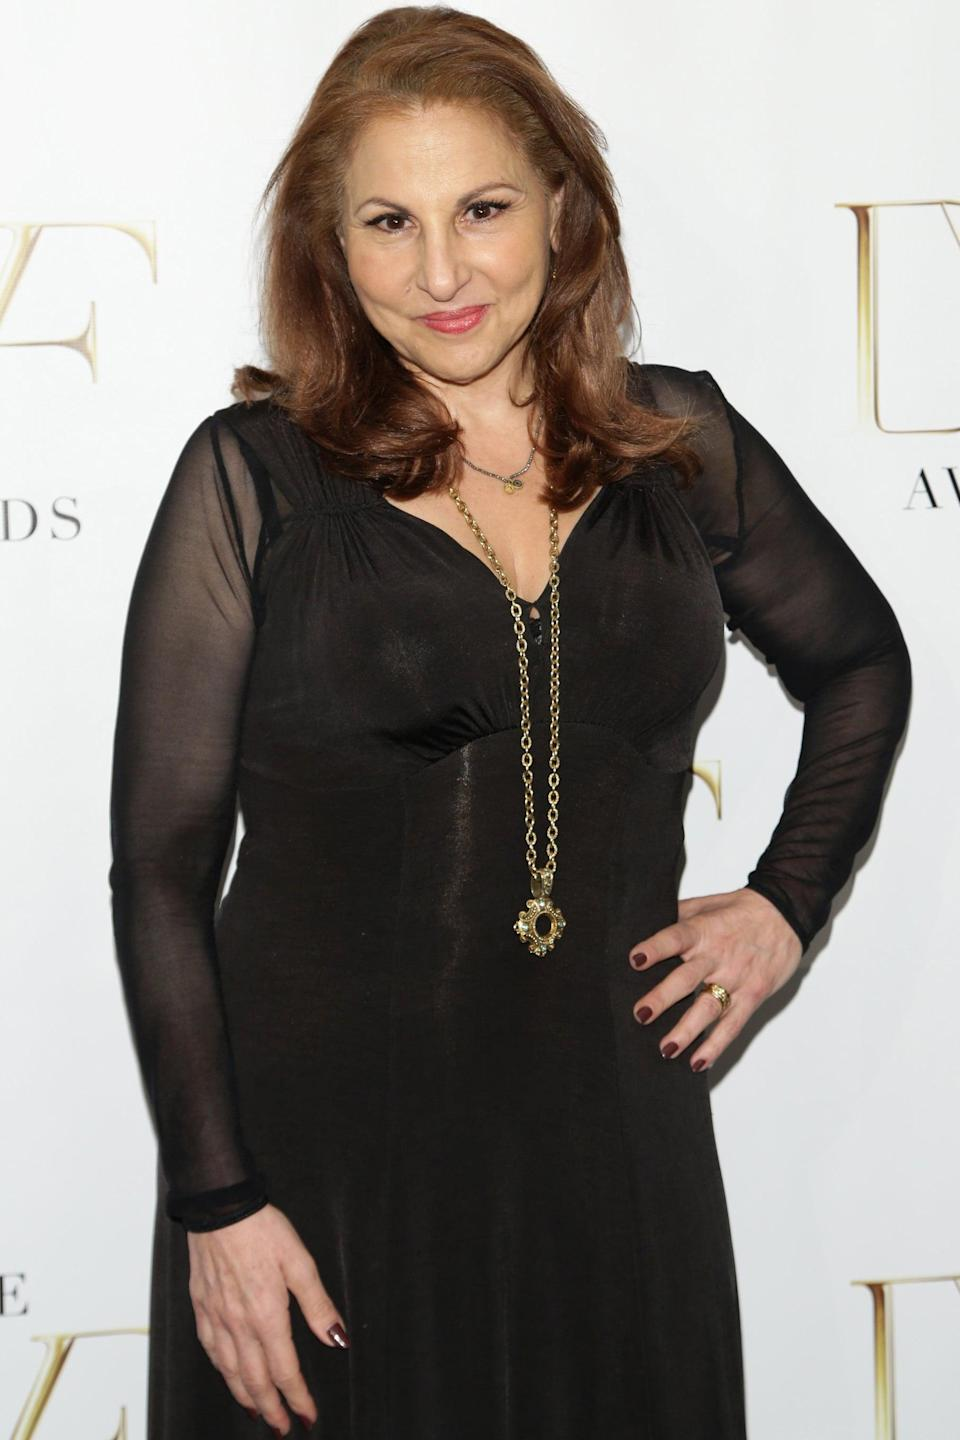 """<p>Kathy Najimy has continued to work in film and TV since <strong><a class=""""link rapid-noclick-resp"""" href=""""https://www.popsugar.co.uk/Hocus-Pocus"""" rel=""""nofollow noopener"""" target=""""_blank"""" data-ylk=""""slk:Hocus Pocus"""">Hocus Pocus</a></strong>, starring in projects such as 2001's <strong>Rat Race</strong> and completing stints on <strong>Veep</strong> and <strong>Unforgettable</strong>. She's also lent her voice to a number of cartoons, including <strong>King of the Hill</strong>, in which she voices Peggy, and the Netflix hit <strong>BoJack Horseman</strong>.</p>"""